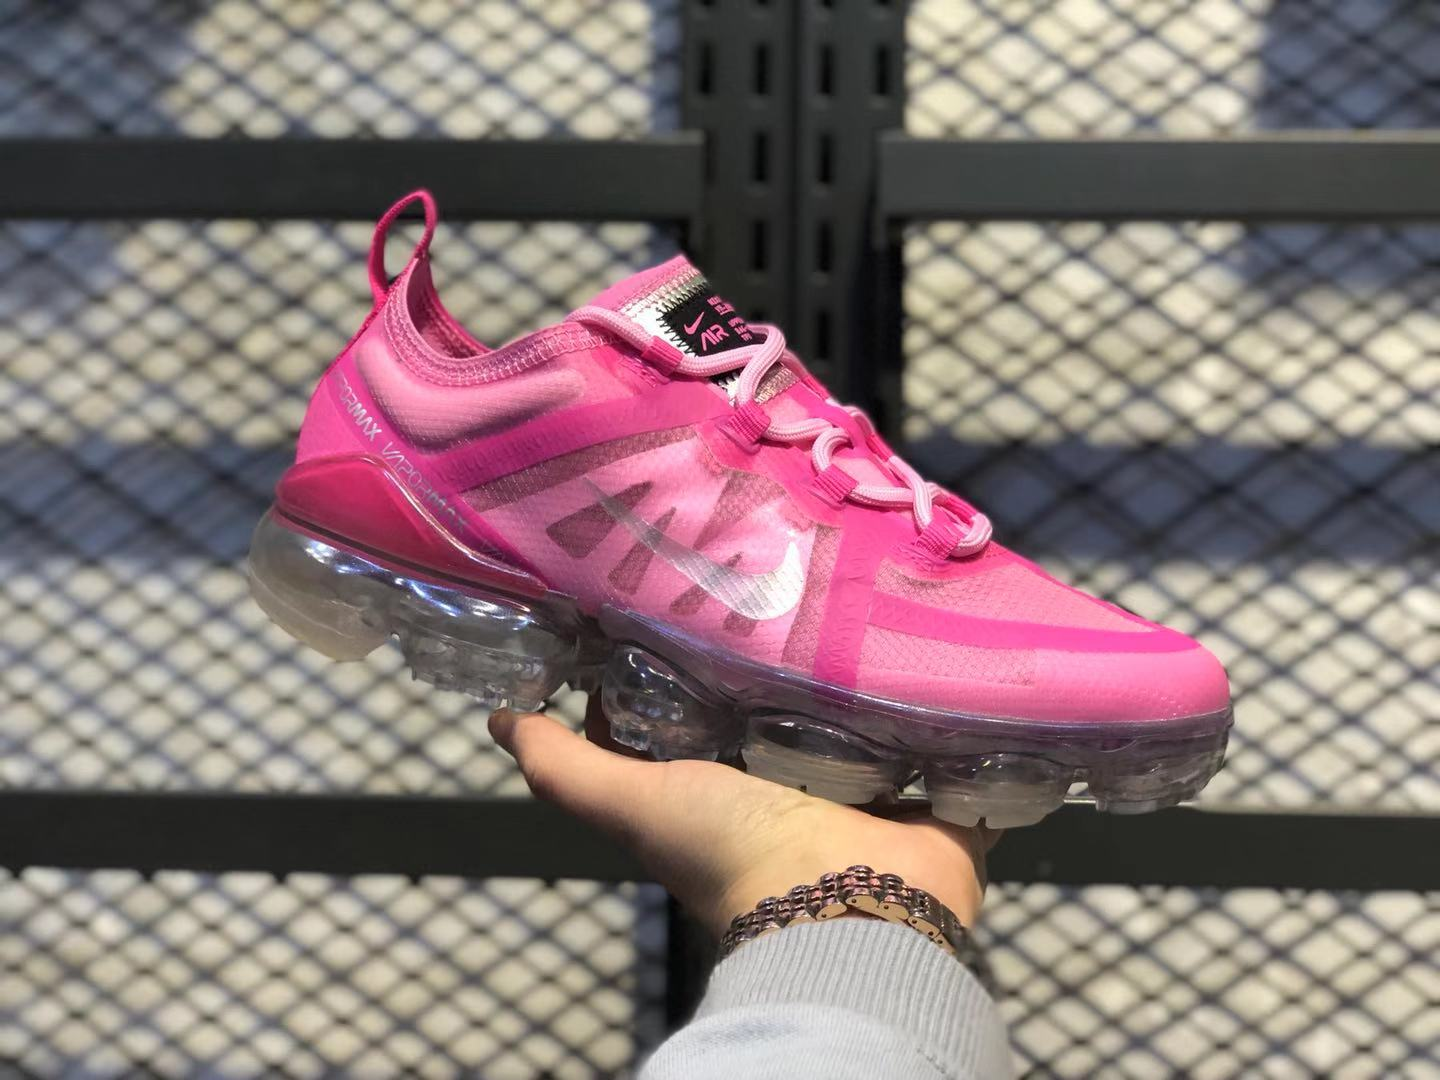 Nike Air Vapormax Smokey Mauve Top Quality Women's Sneakers For Sale AR6632-600